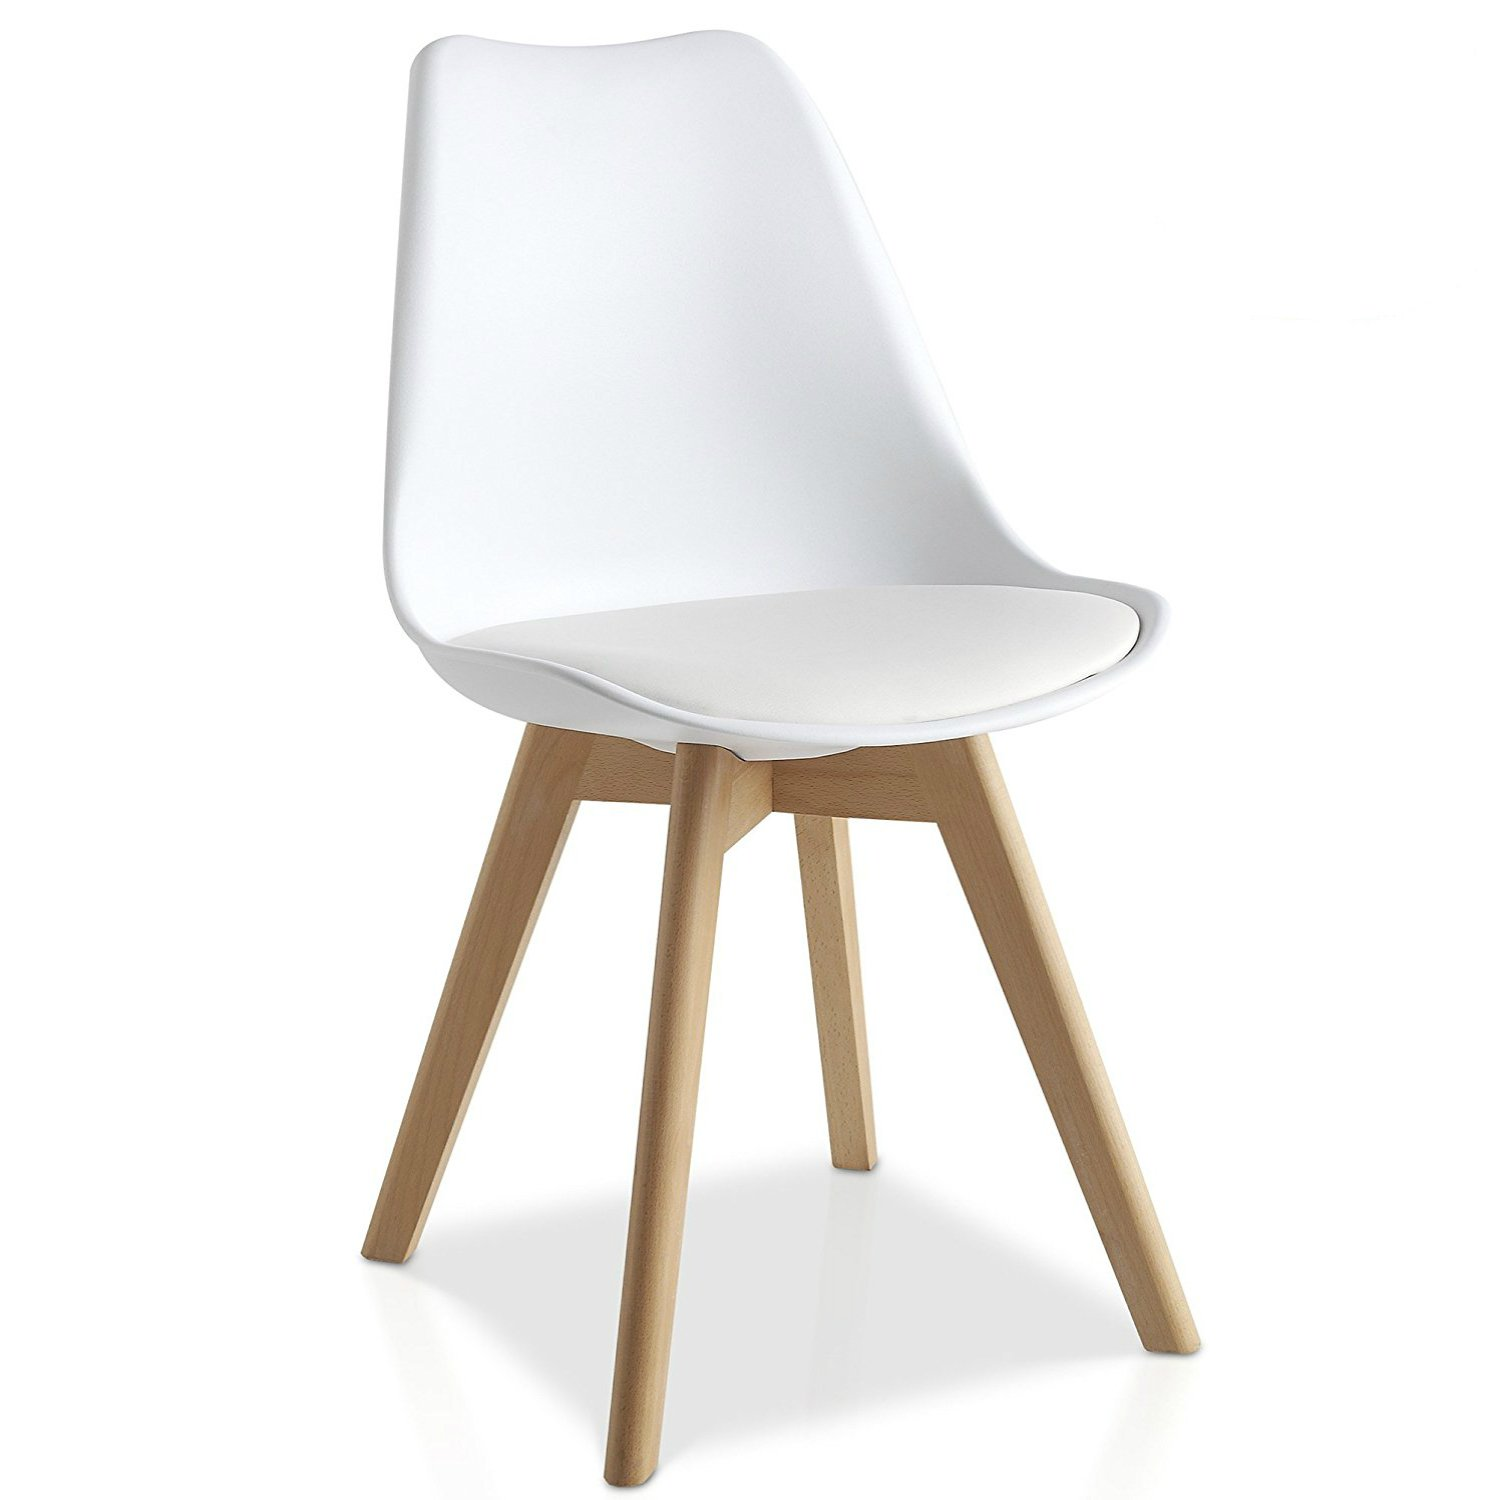 Mmilo Tulip Pyramid Dining Chairs fice Chair With Solid Wooden